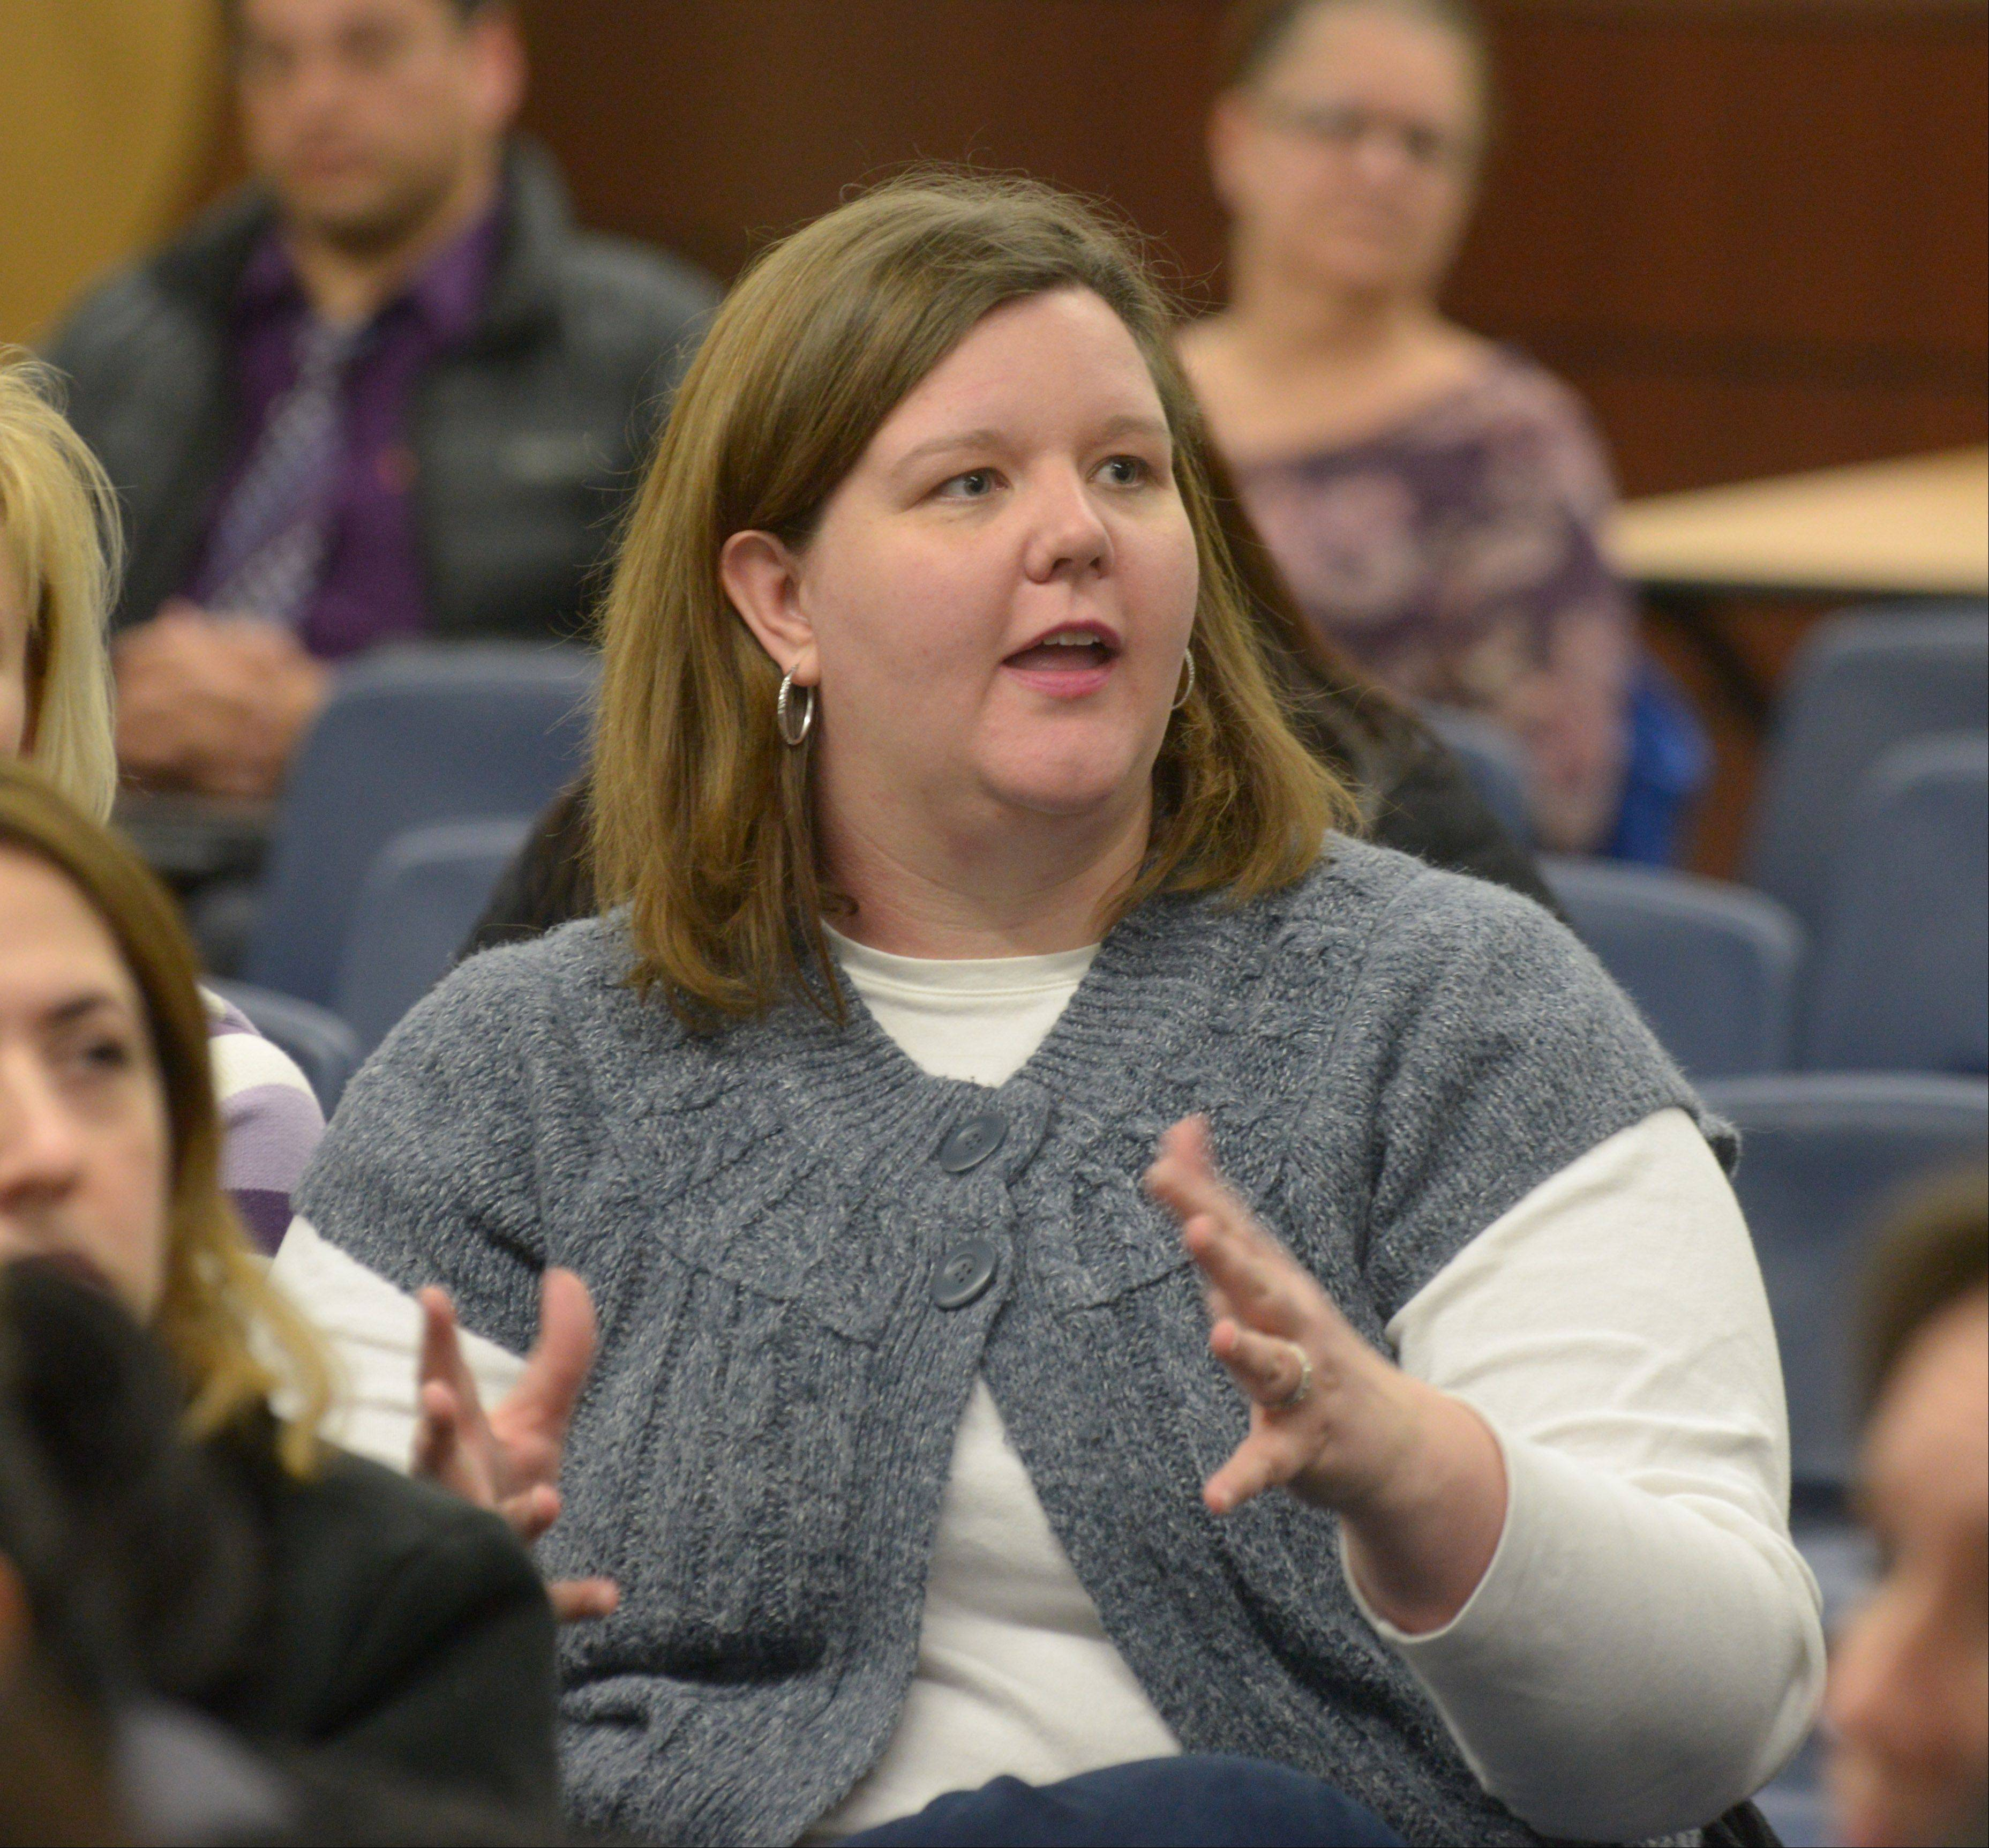 Julie Braun of Winfield asks why it took a strike for West Chicago District 33 and its teachers union to agree on a contract. Braun was one of about 60 parents at a special board meeting Thursday night to discuss a tentative agreement reached that morning.